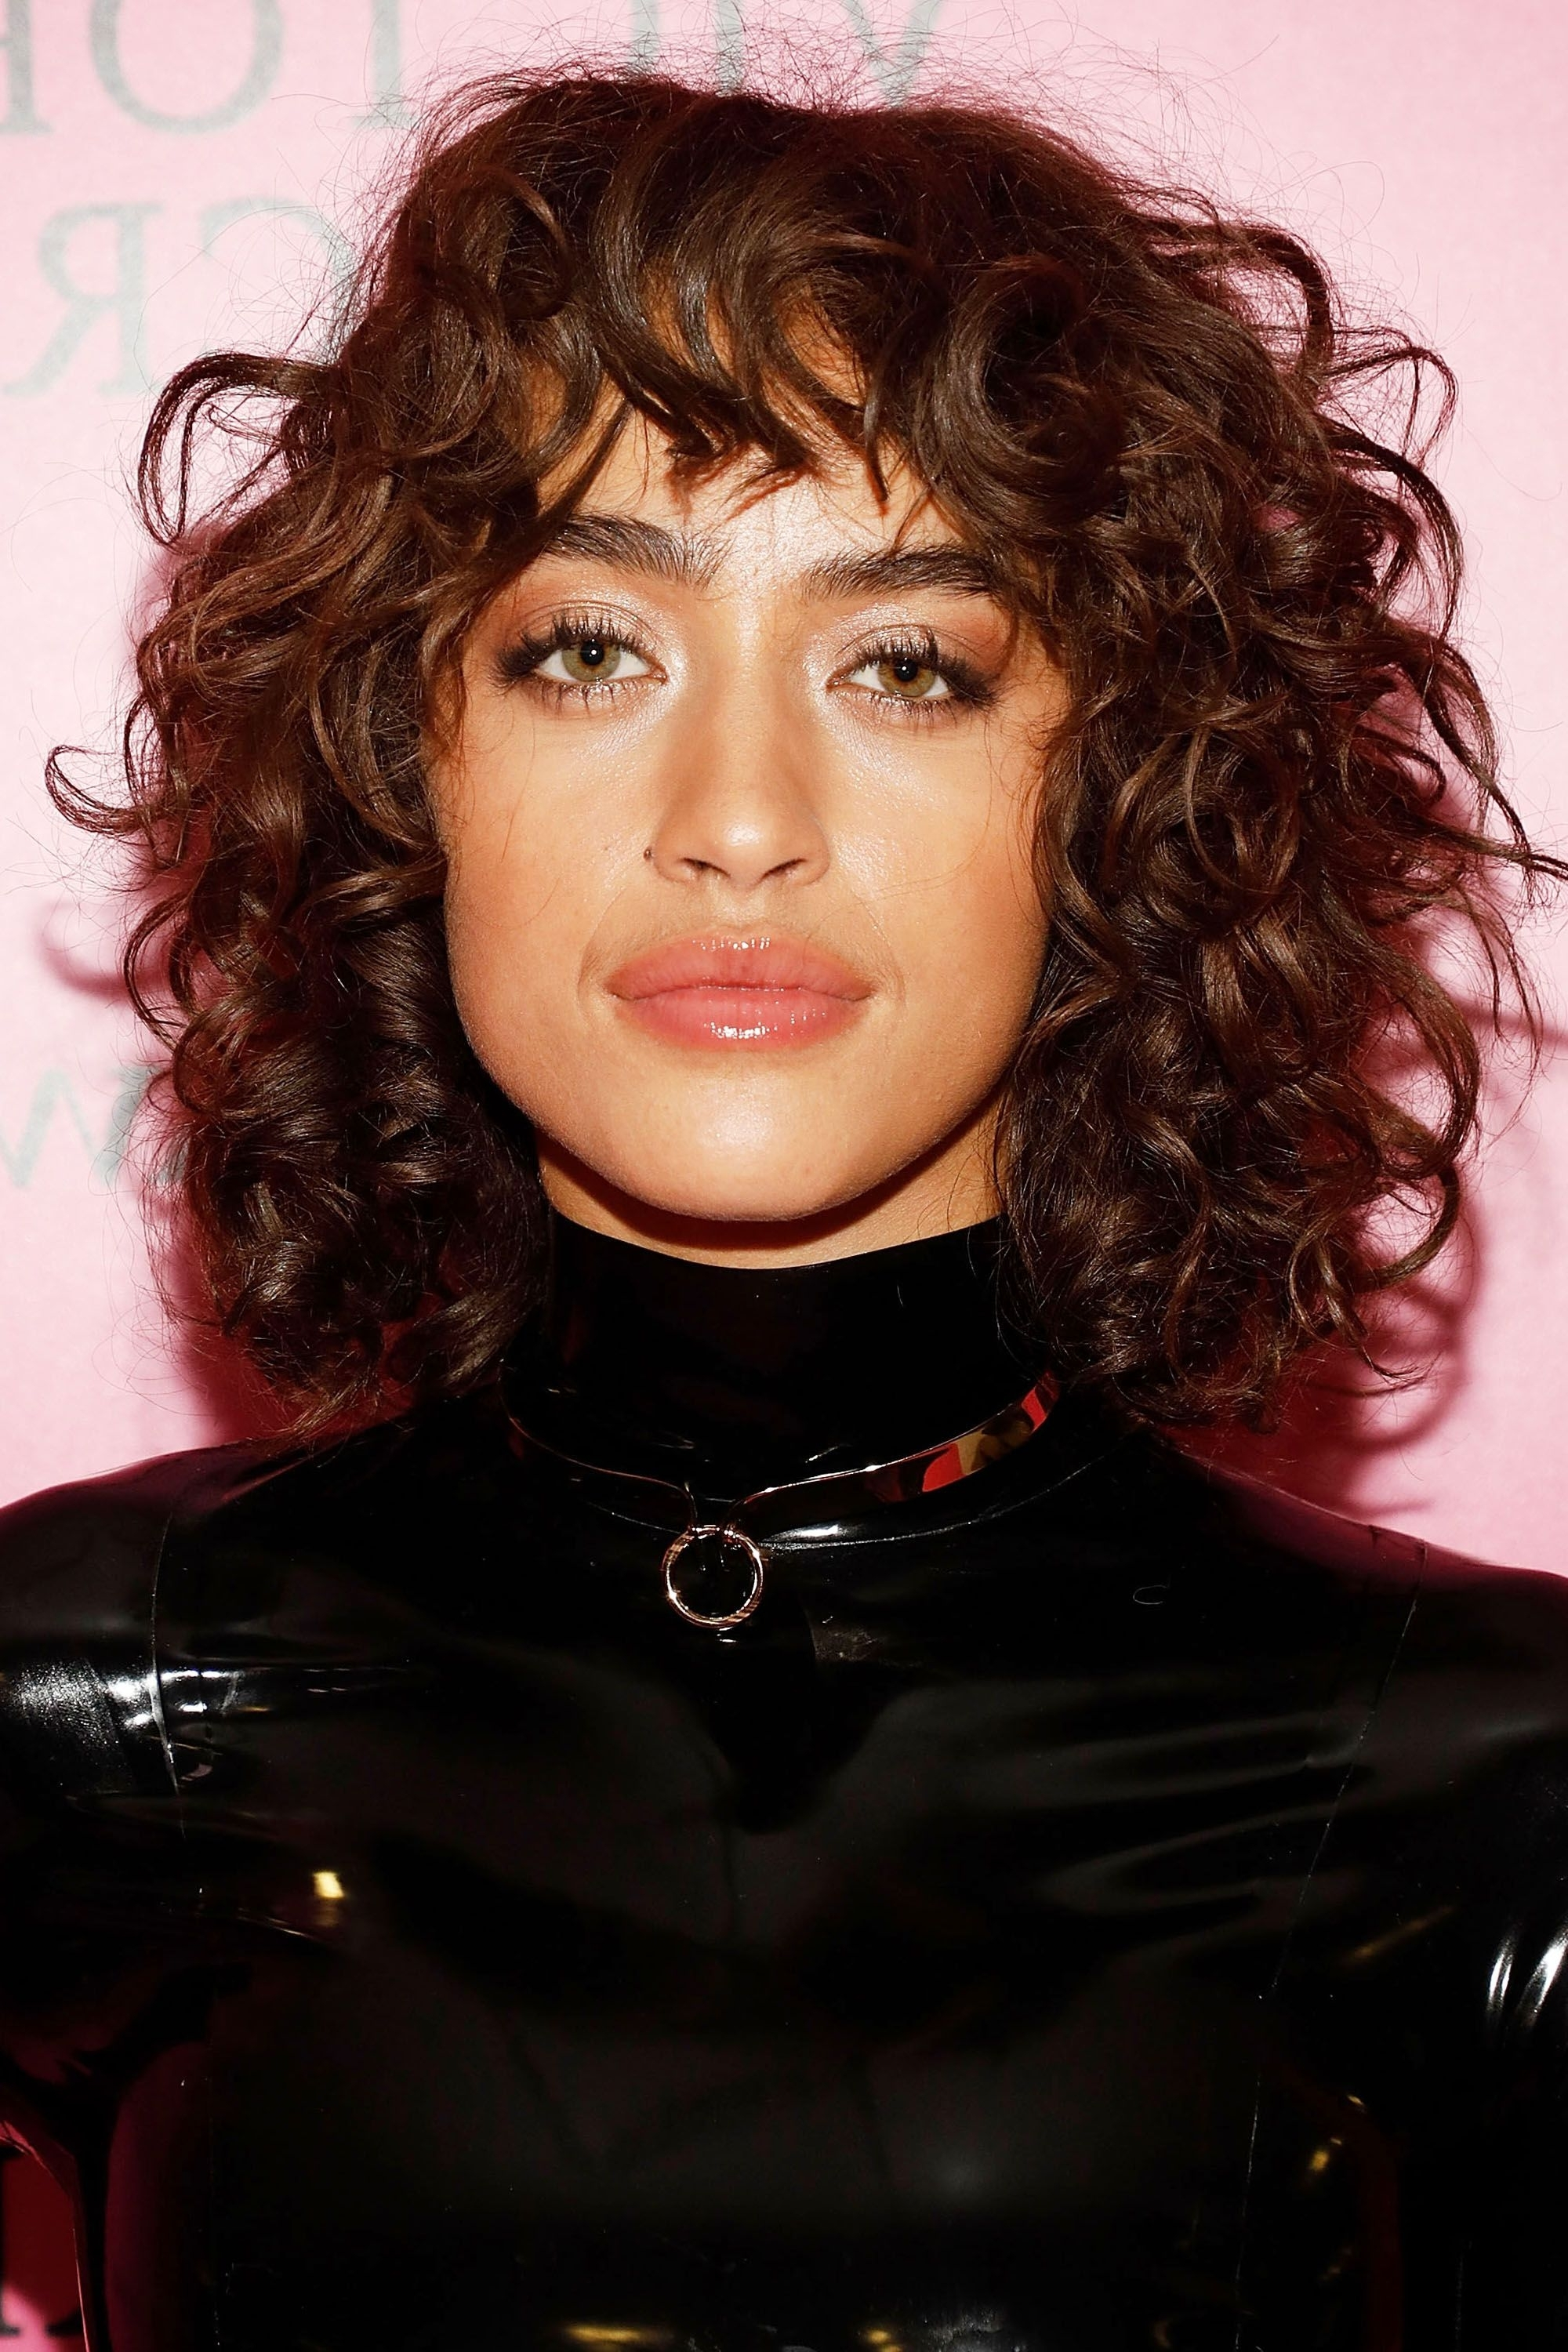 112 Hairstyles With Bangs You'll Want To Copy – Celebrity Haircuts Pertaining To Well Liked Brunette Pixie Hairstyles With Feathered Layers (View 14 of 20)